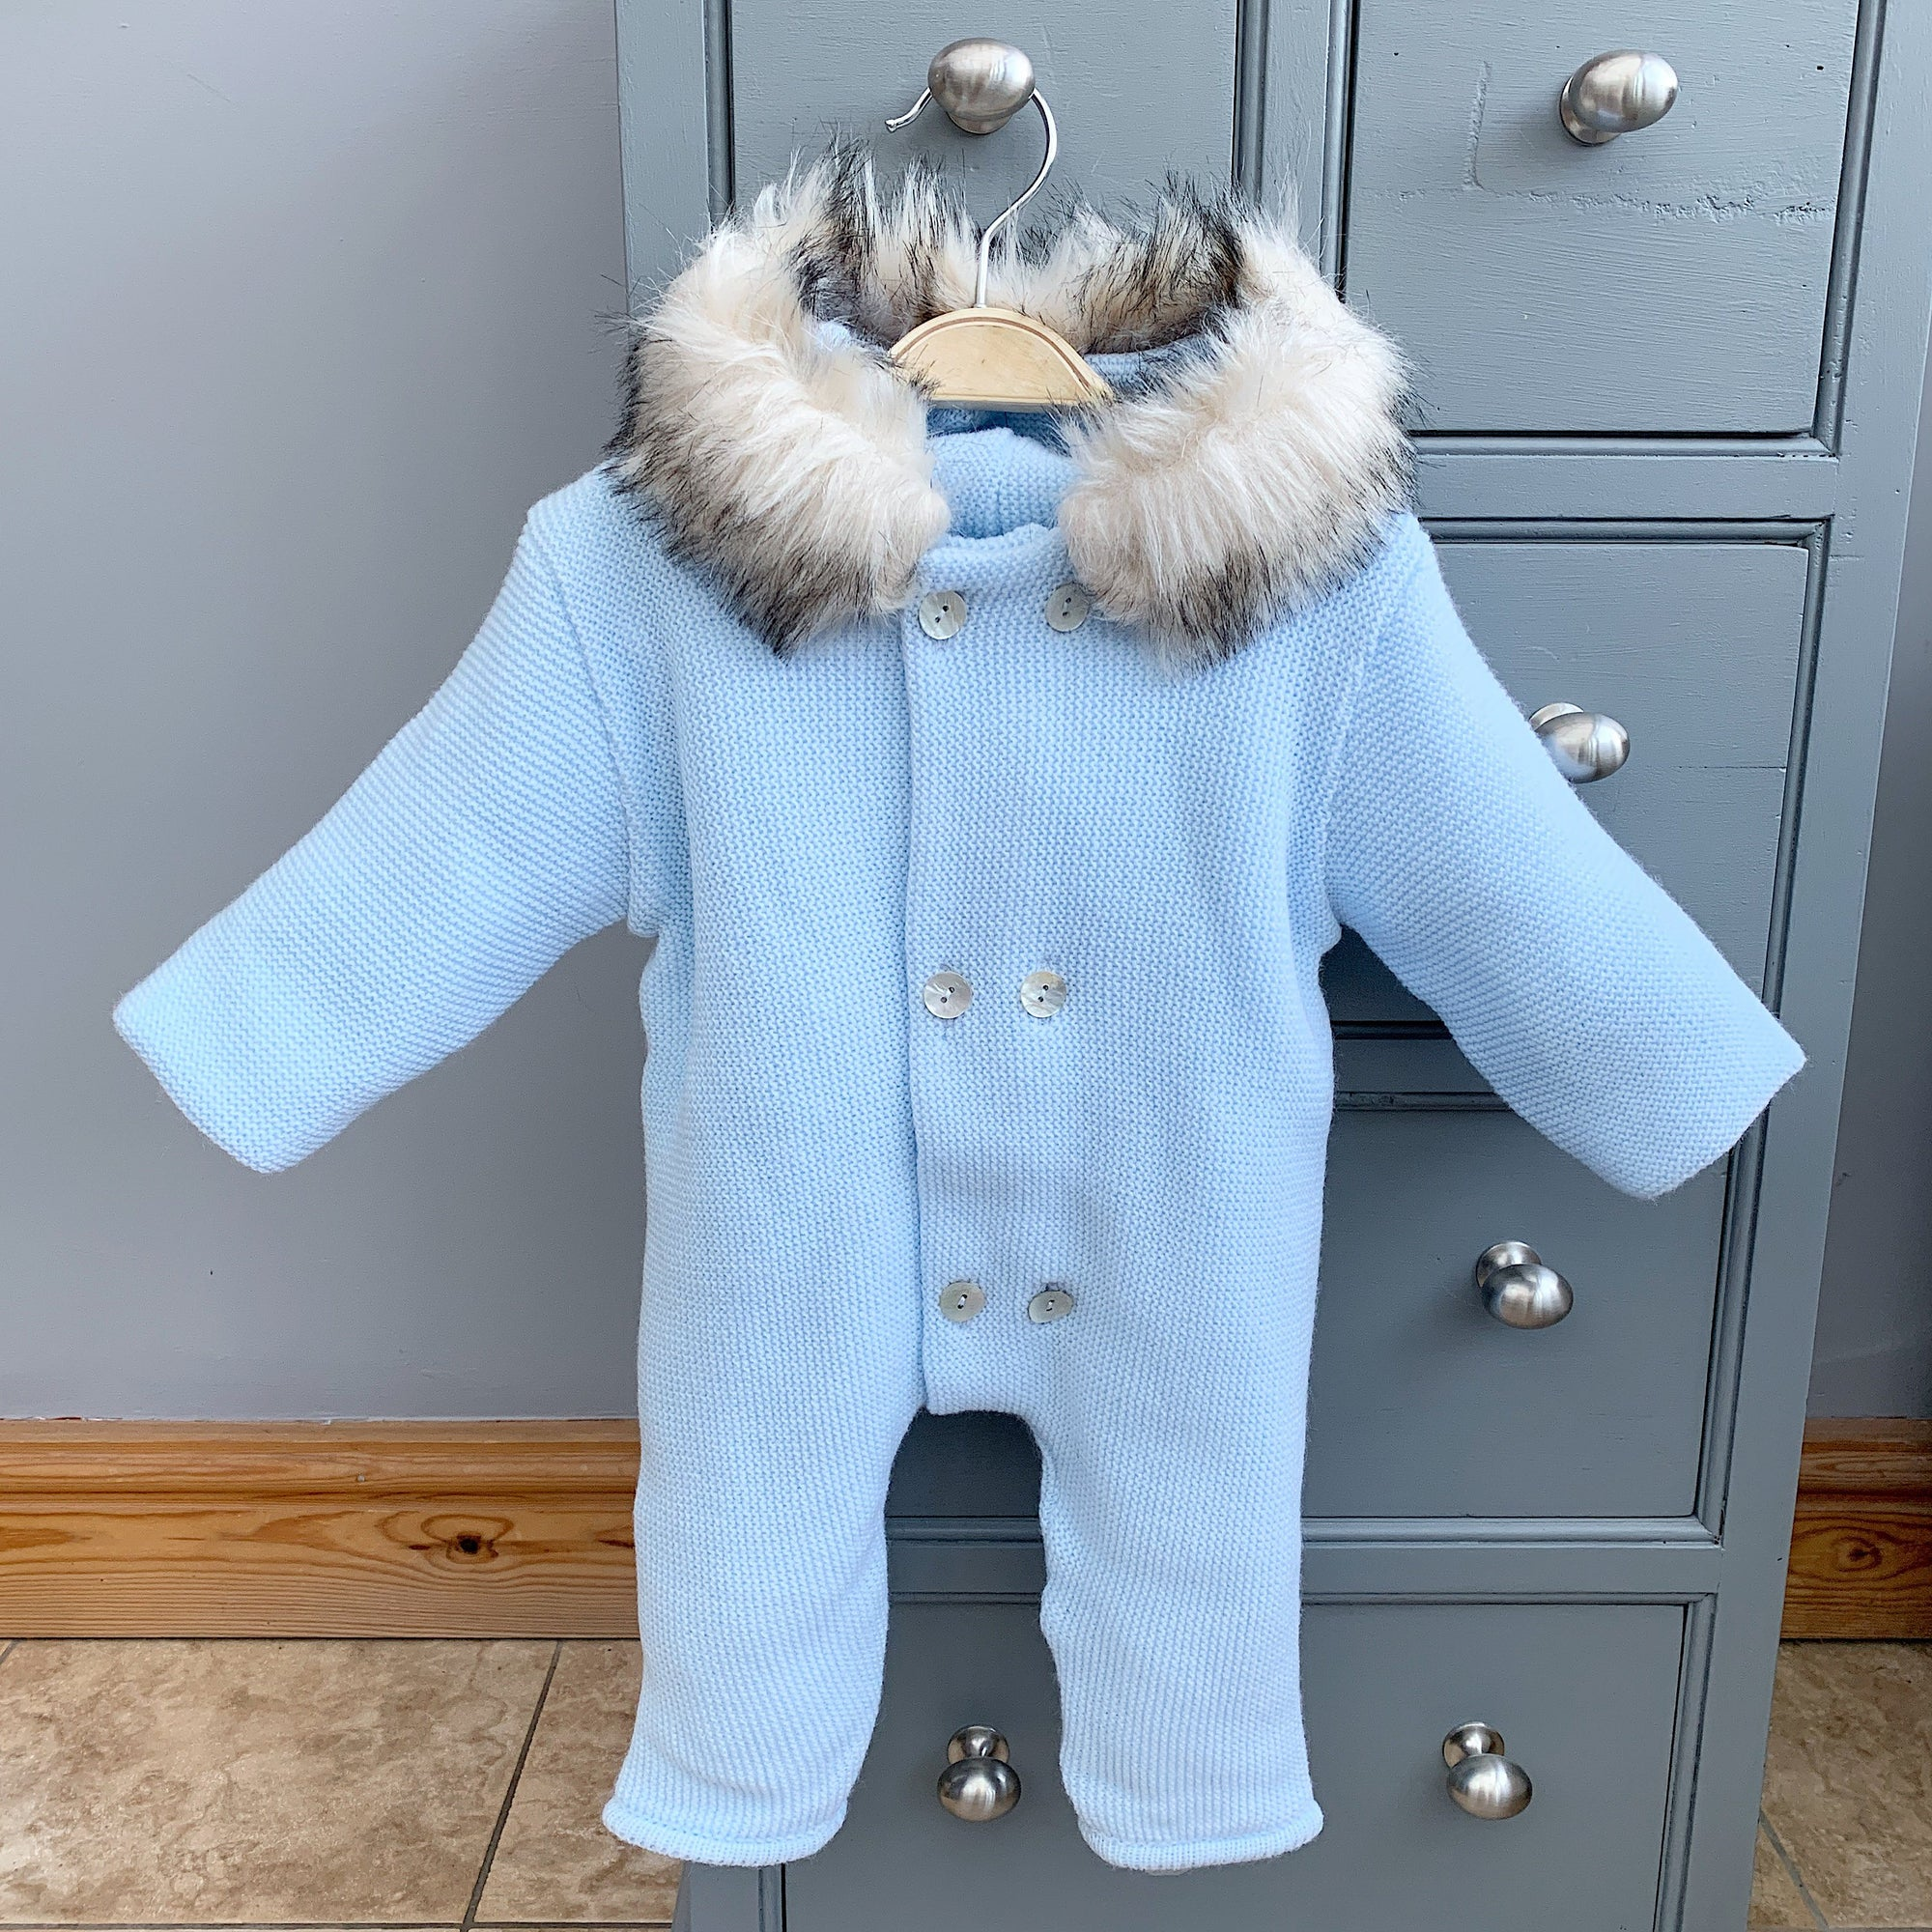 Mebi Light Blue Knitted Footless Pramsuit with Faux Fur Trim | Millie and John